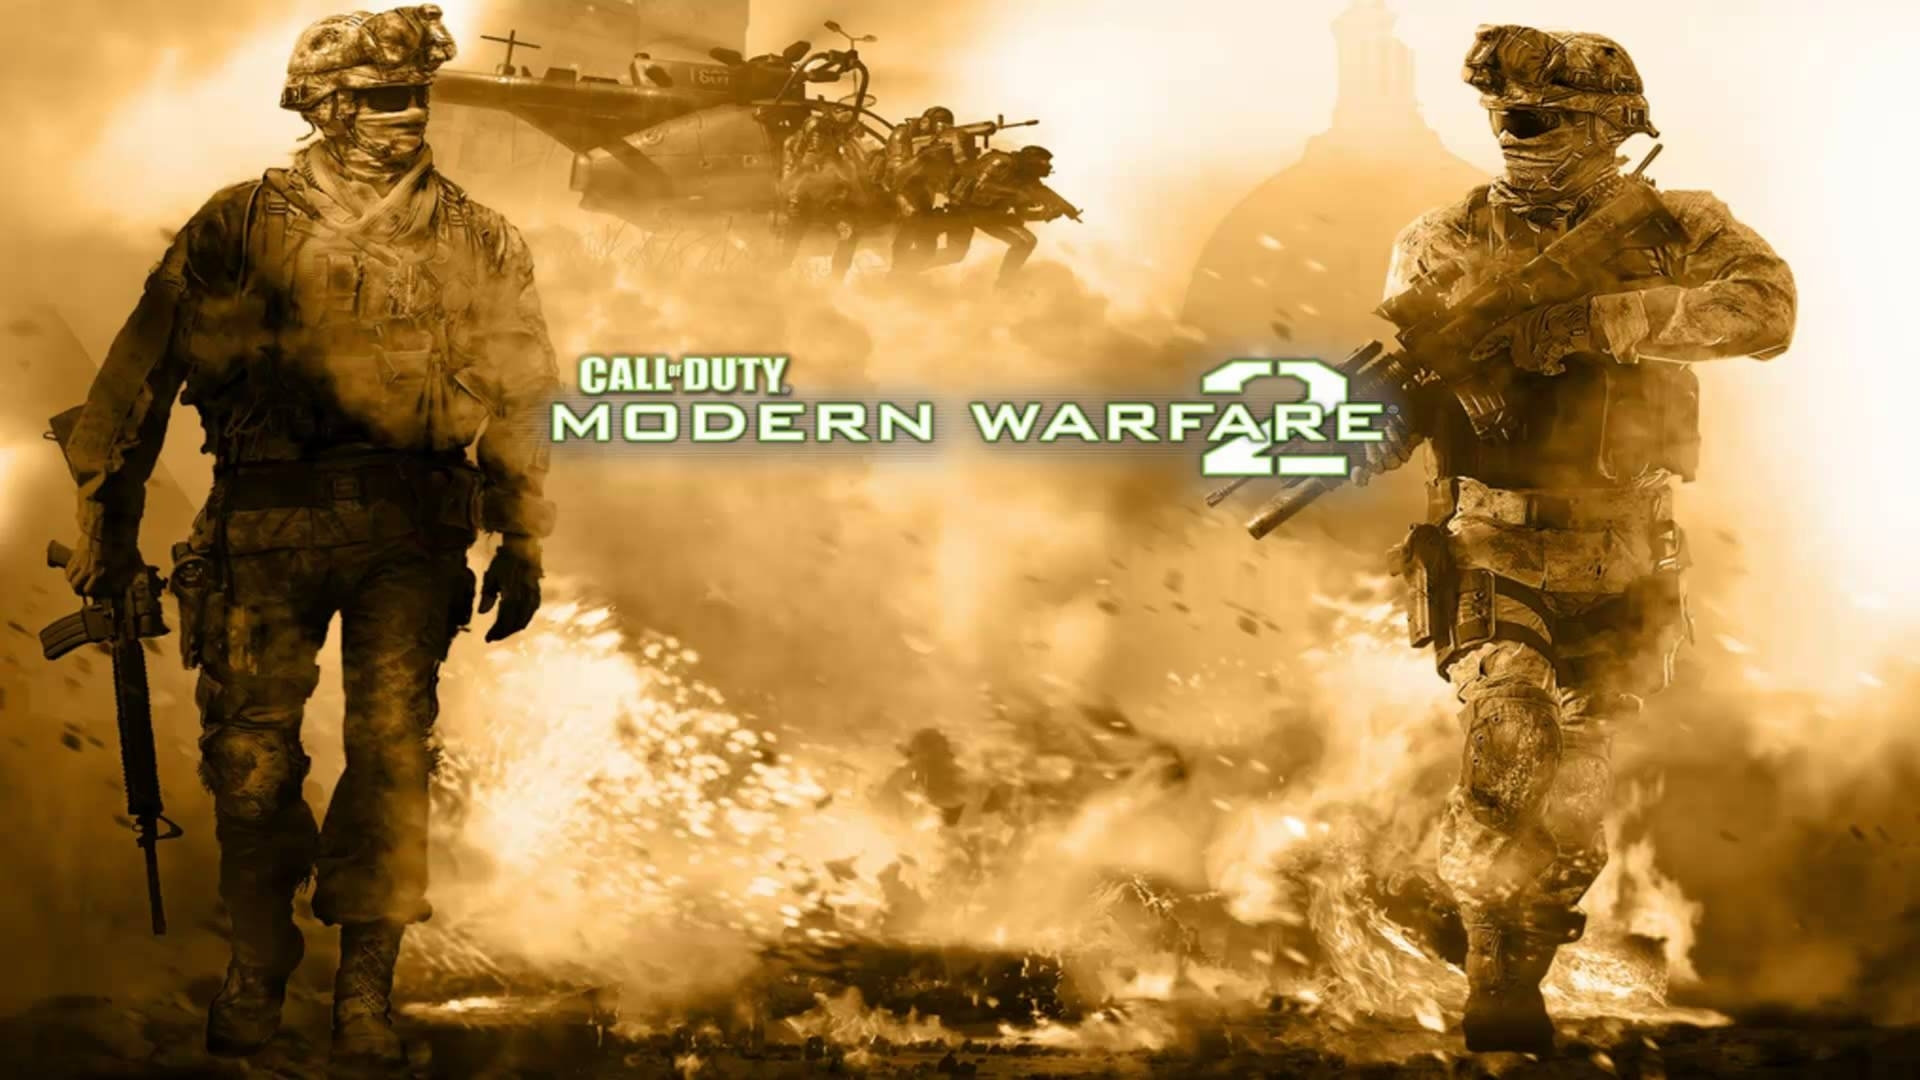 zzl:78 - call of duty modern warfare 2 hd images - 49 free large images